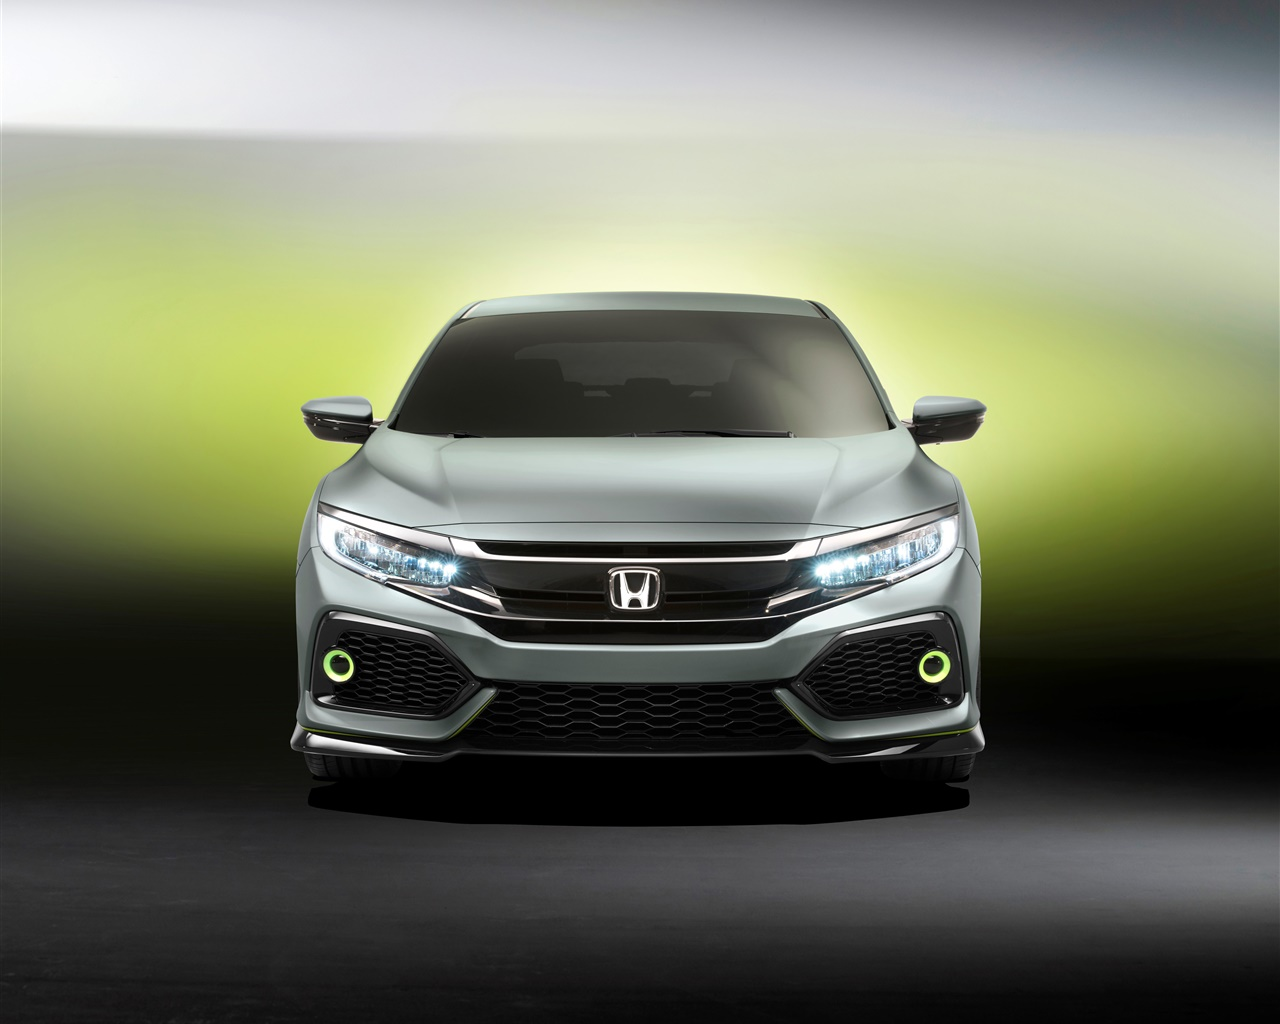 Honda Civic Hatchback car front view 1280x1024 wallpaper